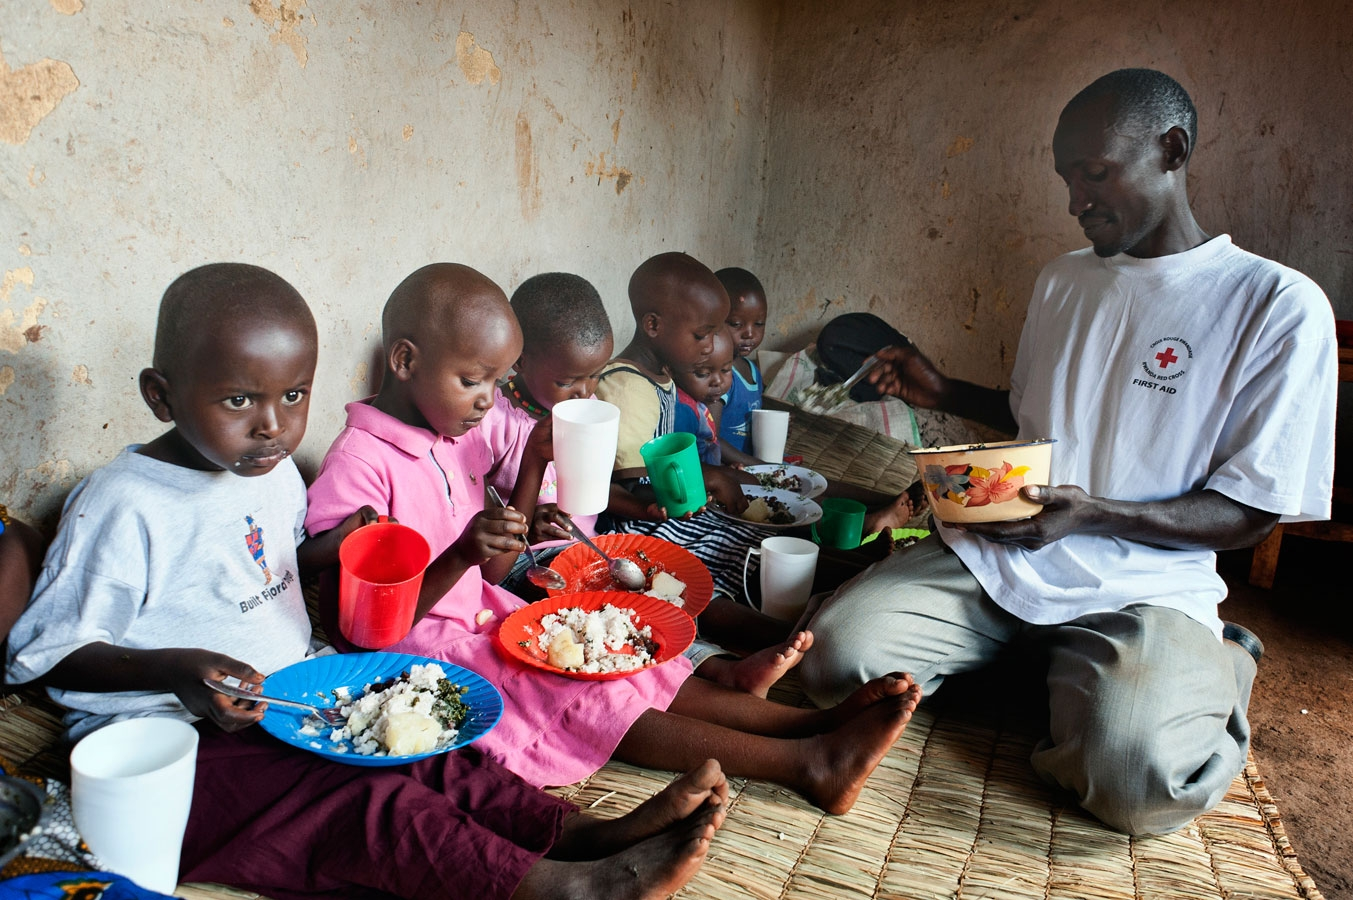 <p>A Rwanda Red Cross volunteer demonstrates healthy nutrition practices at a workshop for mothers</p>